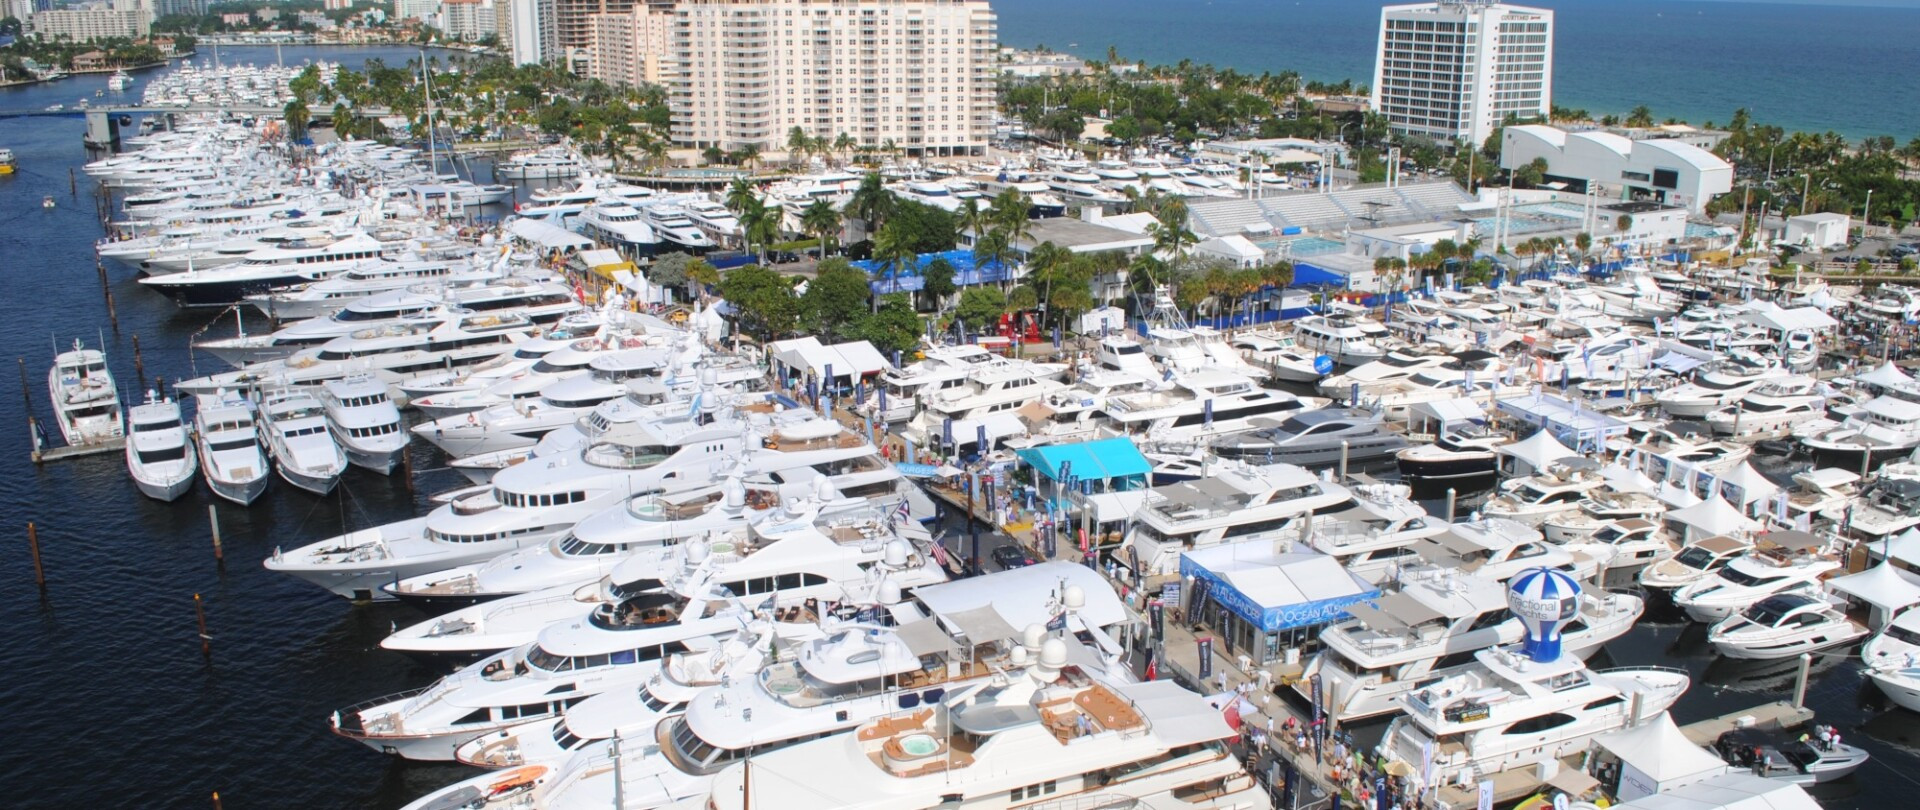 Edmiston at the 2017 Fort Lauderdale International Boat Show photo 1